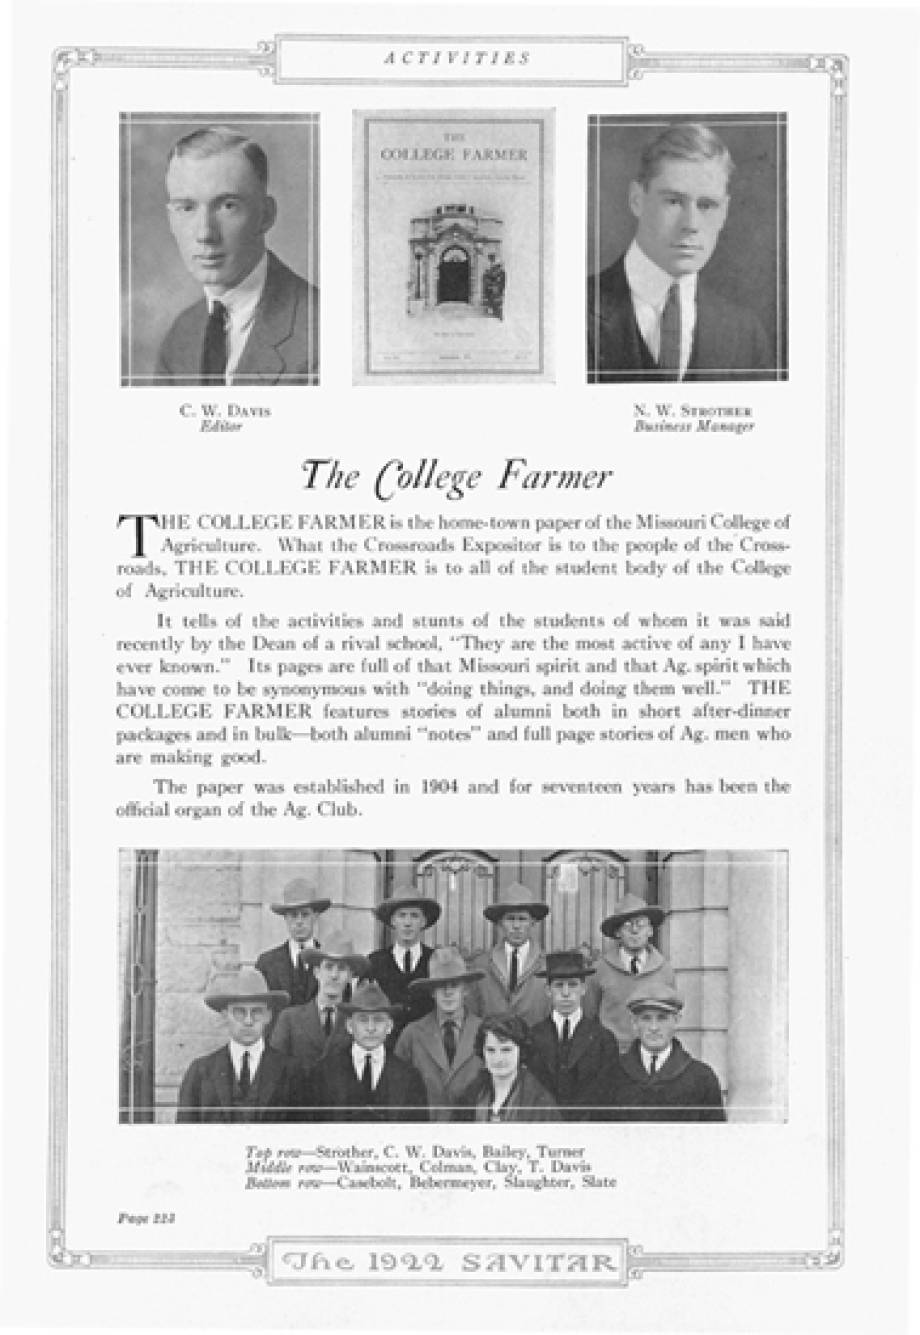 The College Farmer